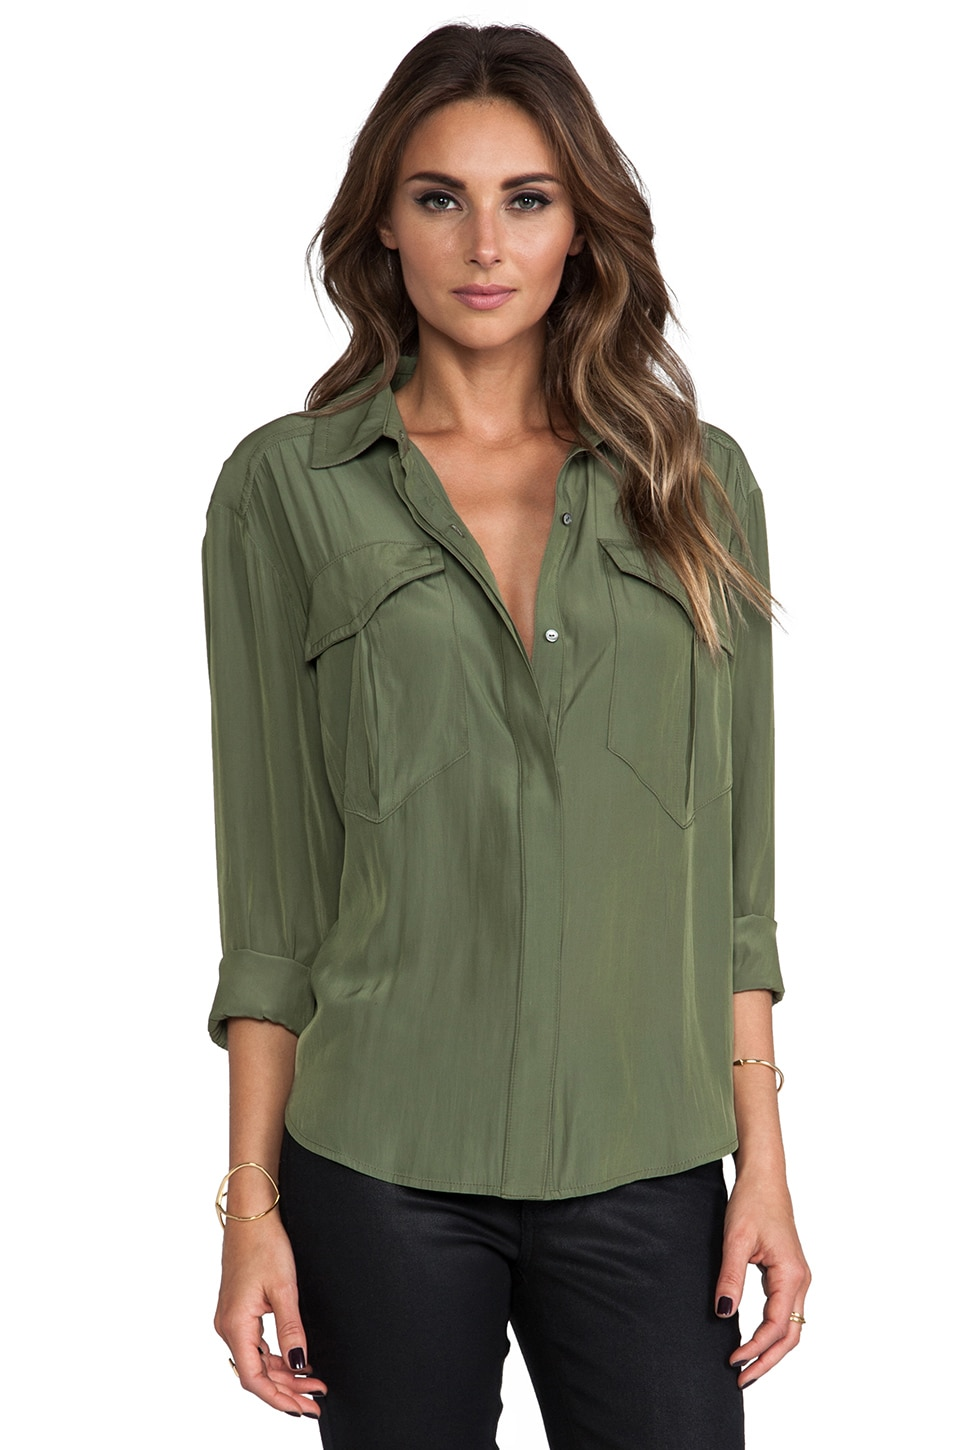 Elizabeth and James Erickson Shirt in Military Green